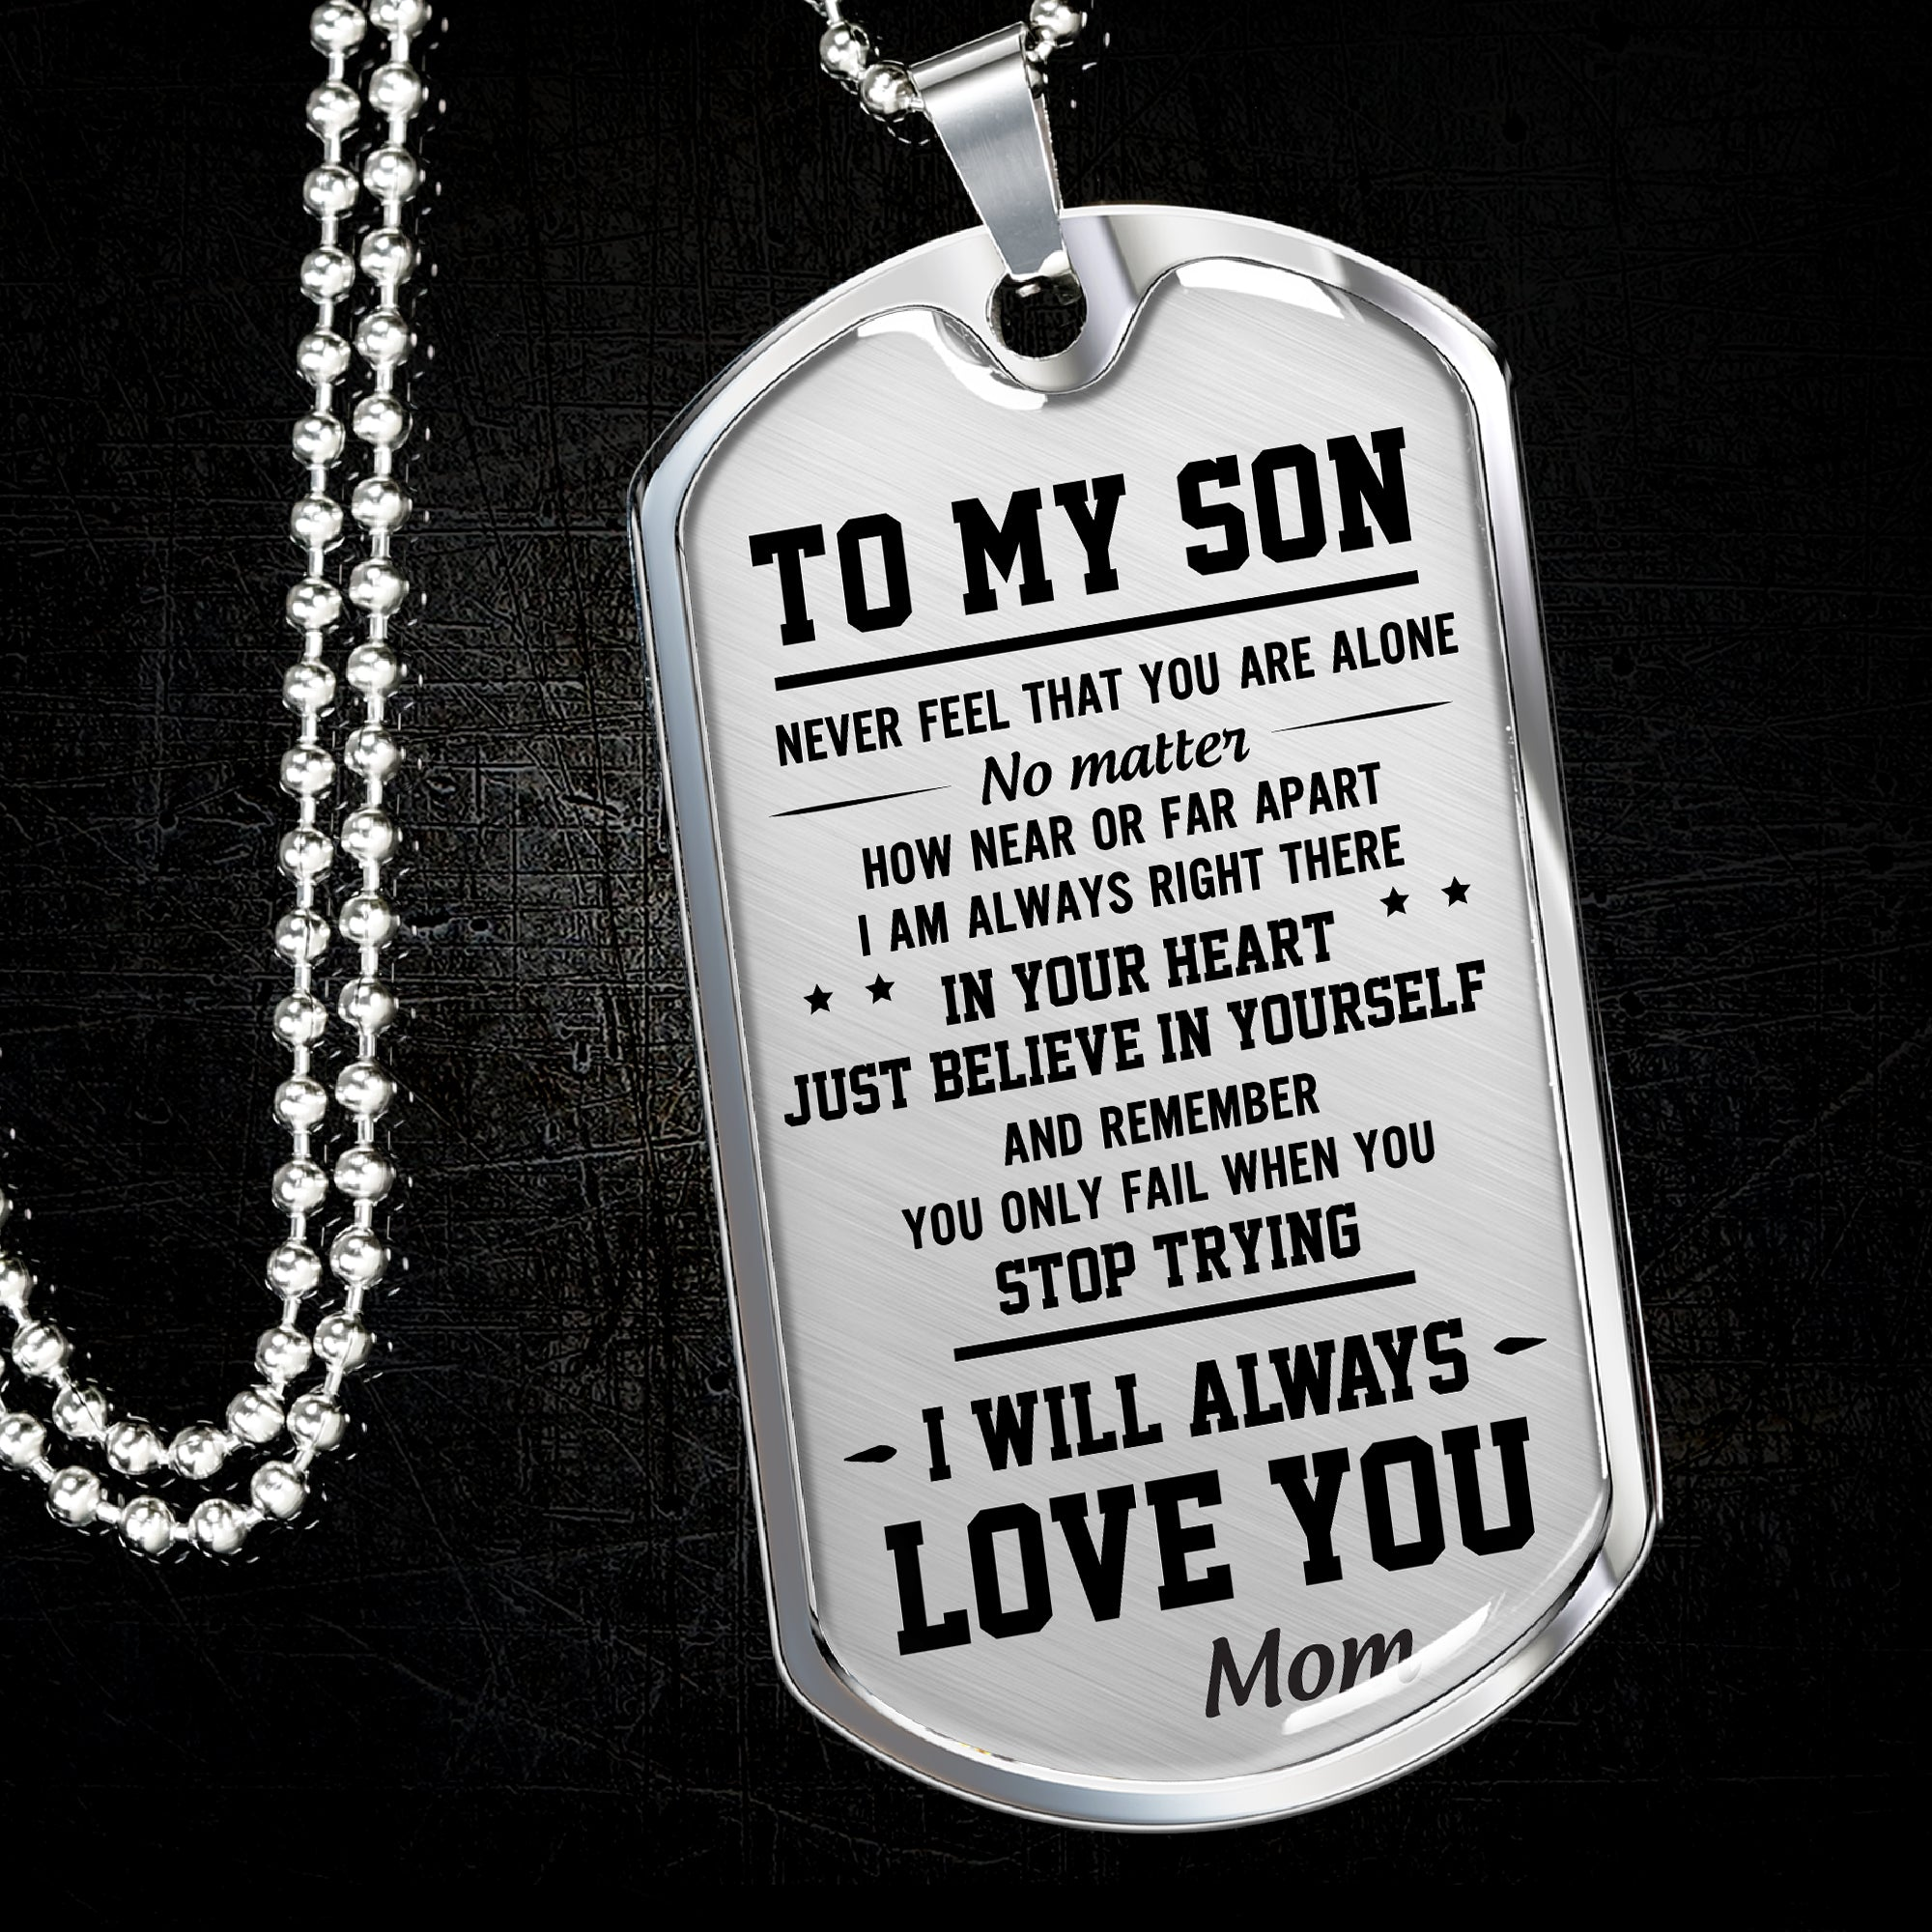 To my son necklace - I am always right there in your heart - Gift for son from mother - Birthday gifts - Dog tag military chain - 5976